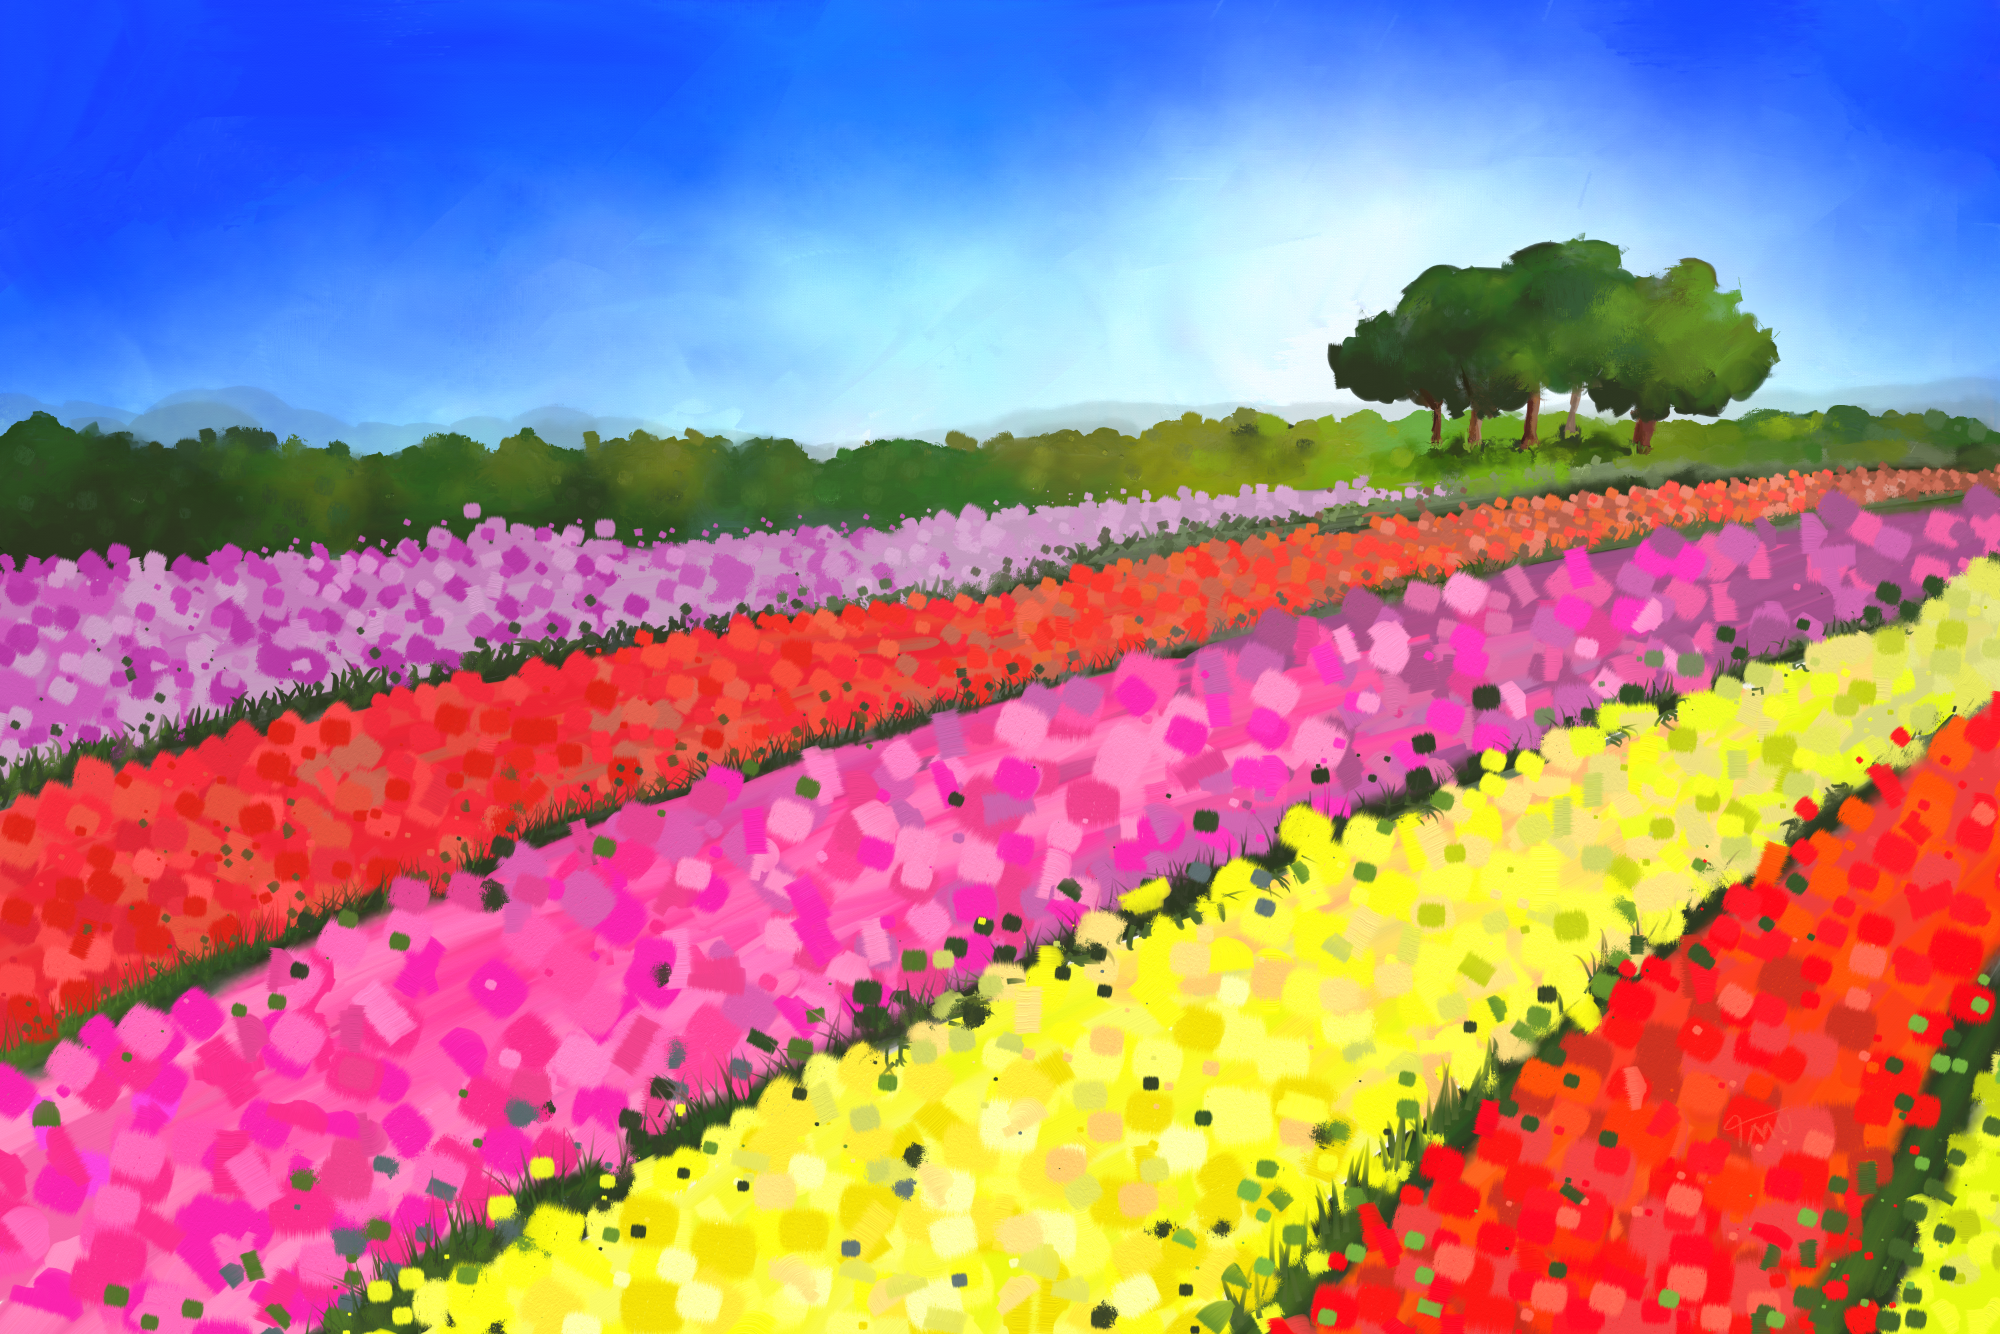 Digital acrylic painting of Dutch tulip fields with trees